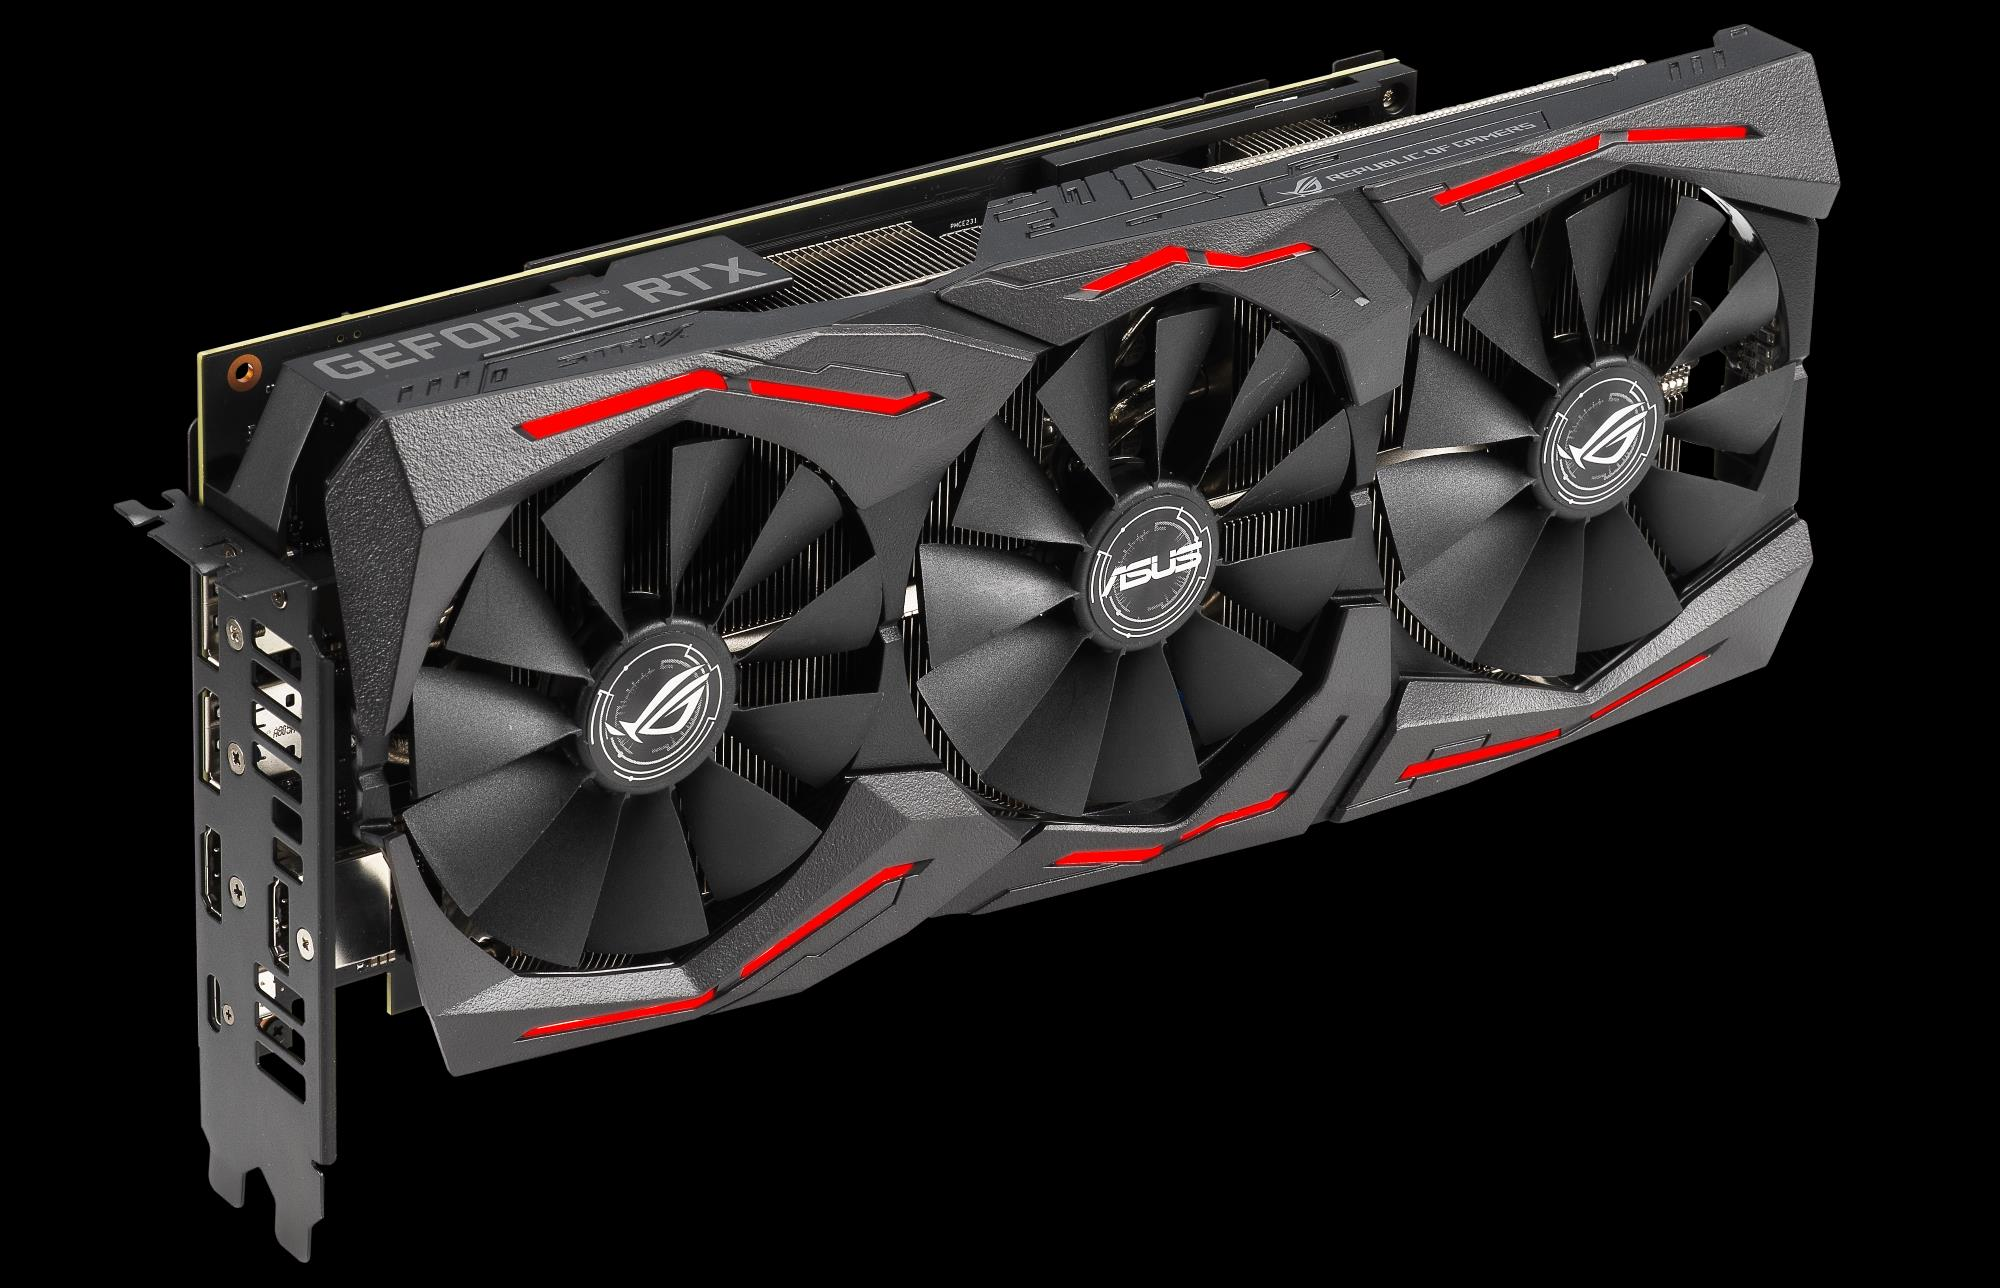 Supercharge your game with ASUS GeForce RTX SUPER graphics